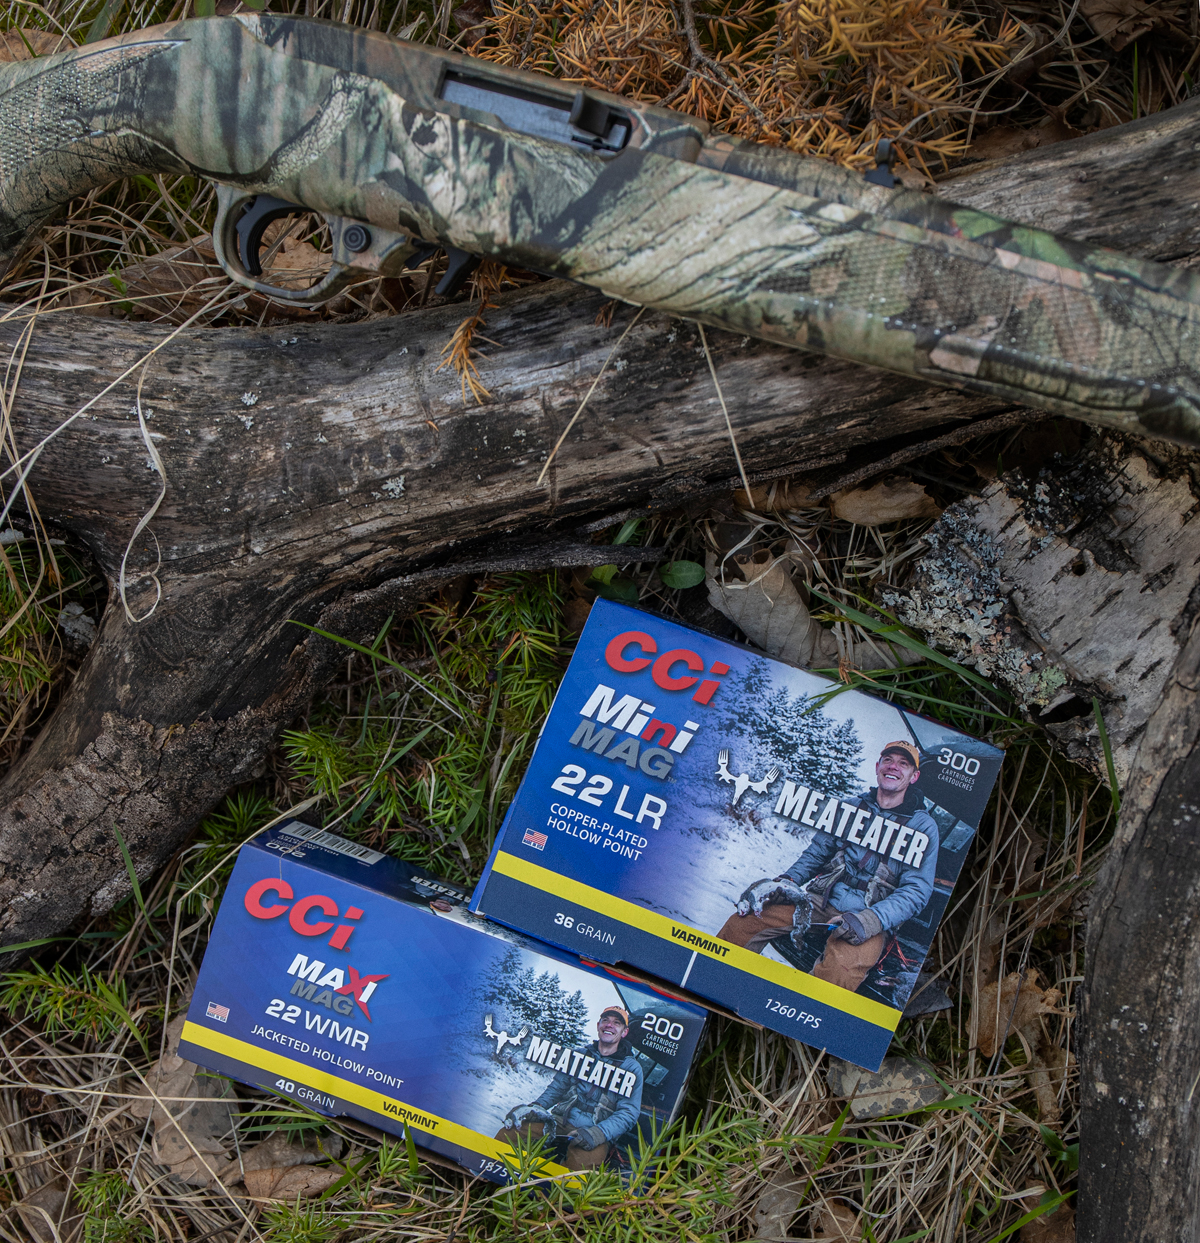 New Rimfire Ammo from CCI and MeatEater